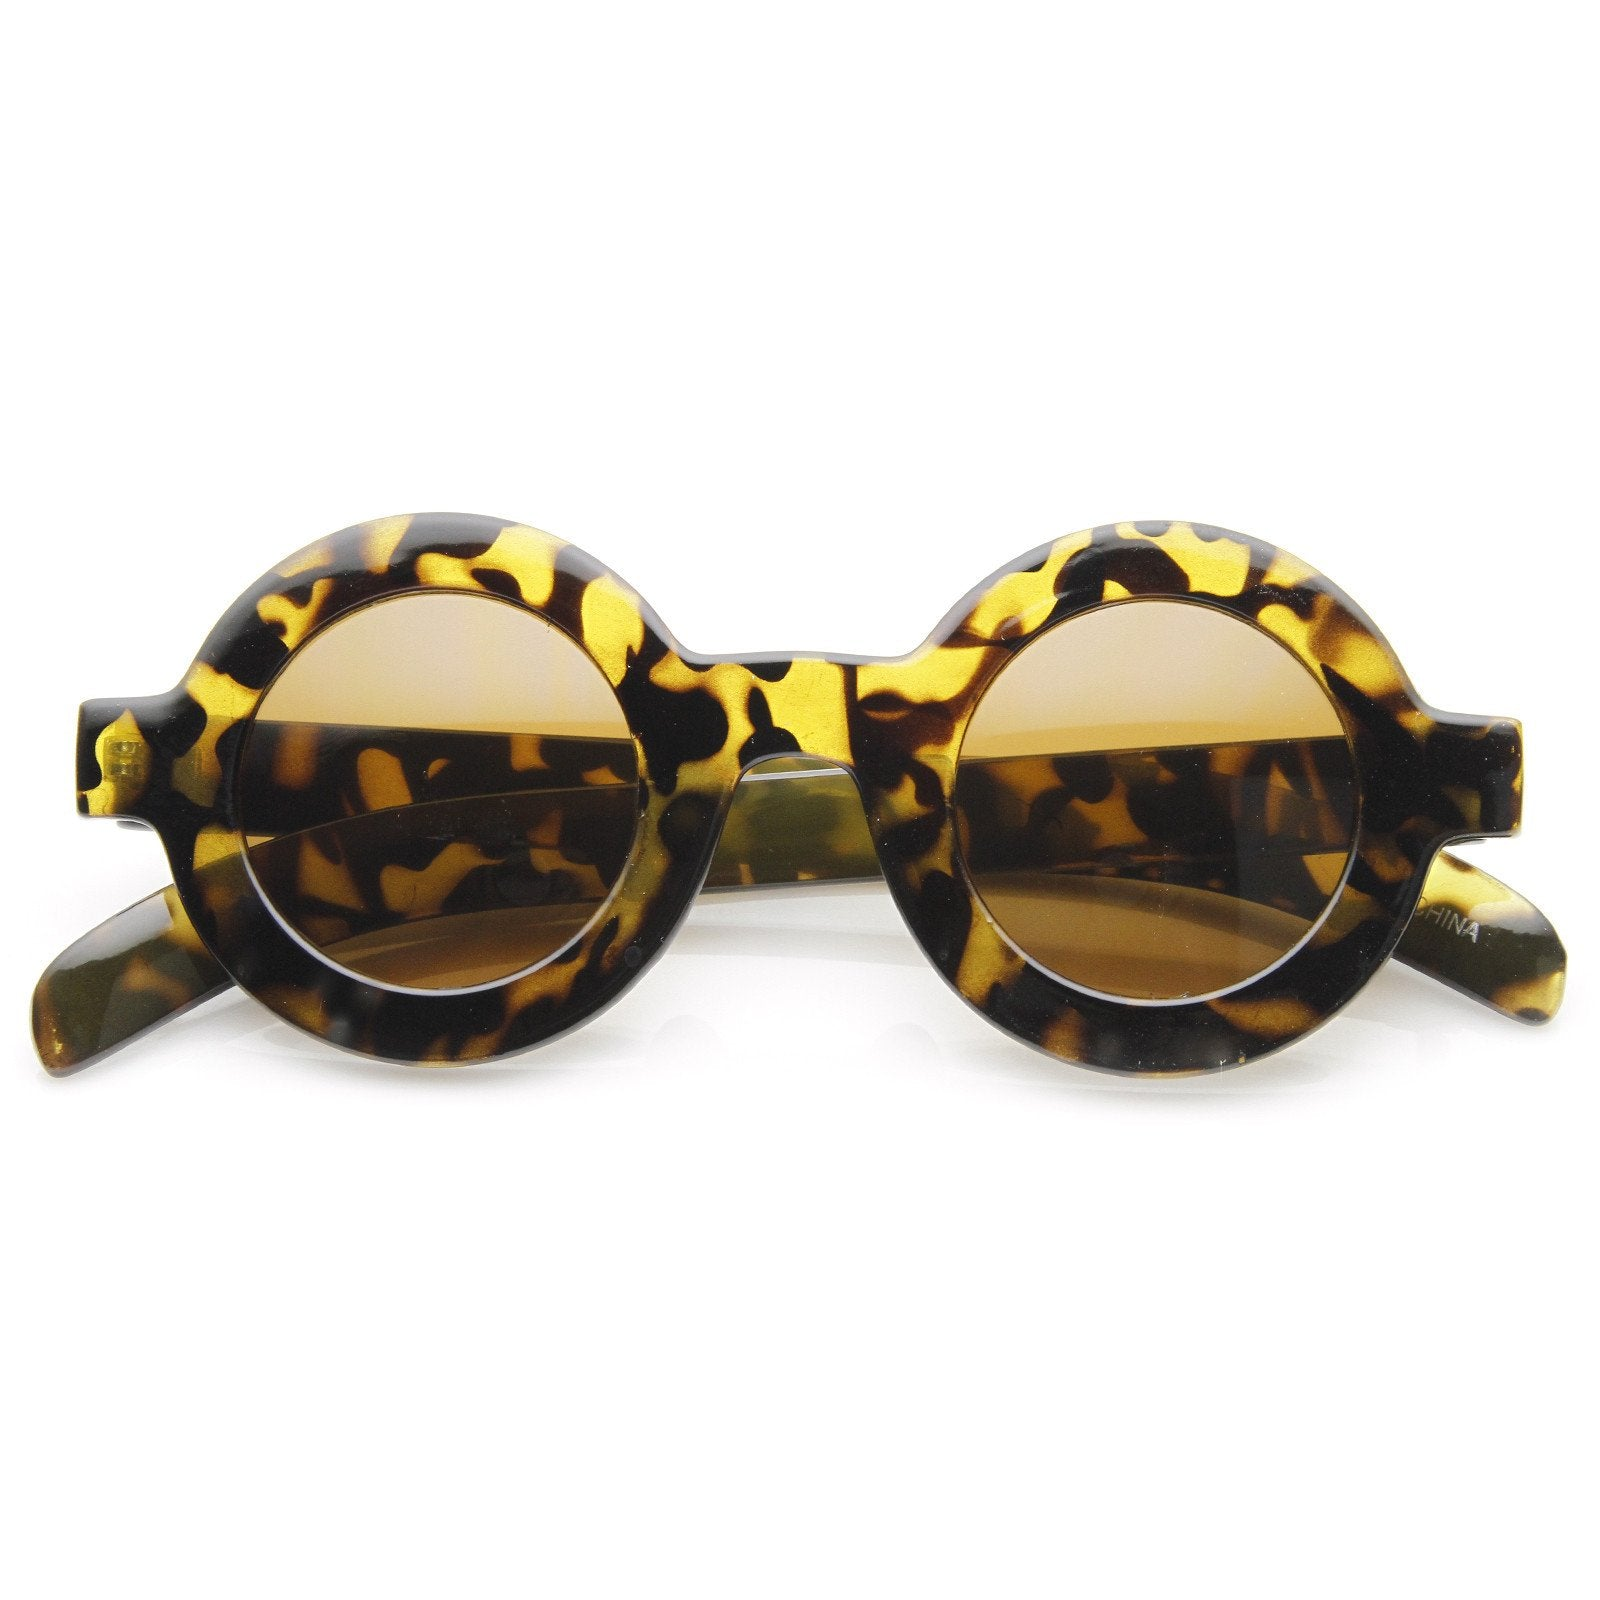 aaec68153ccb7 ... Trendy Blogger Women s Fashion Thick Round Sunglasses · White · White ·  Pink · Brown Tortoise · Black · Brown Tortoise · Yellow Tortoise